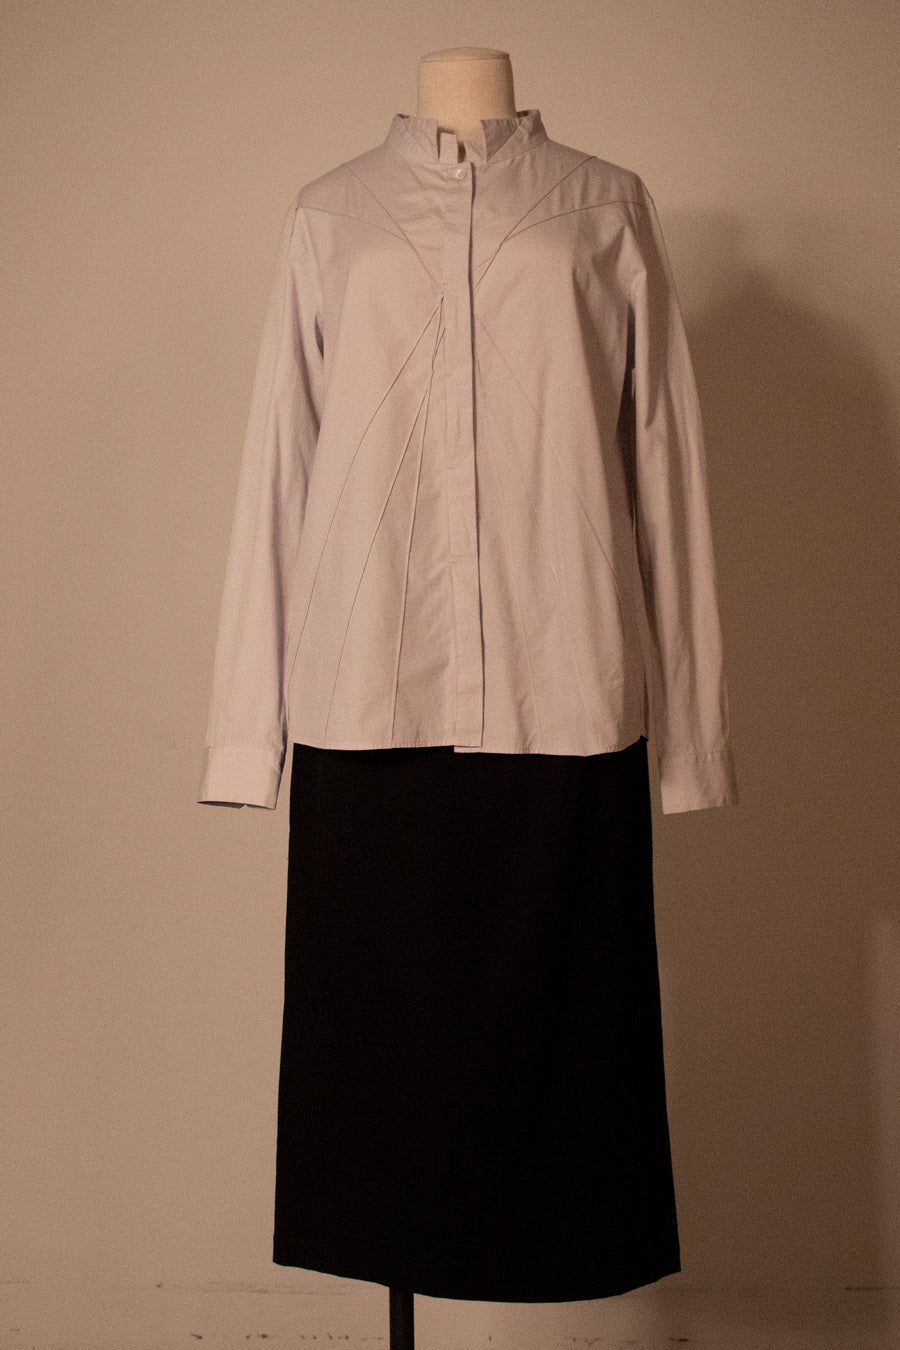 Issey Miyake pale blue button-front shirt